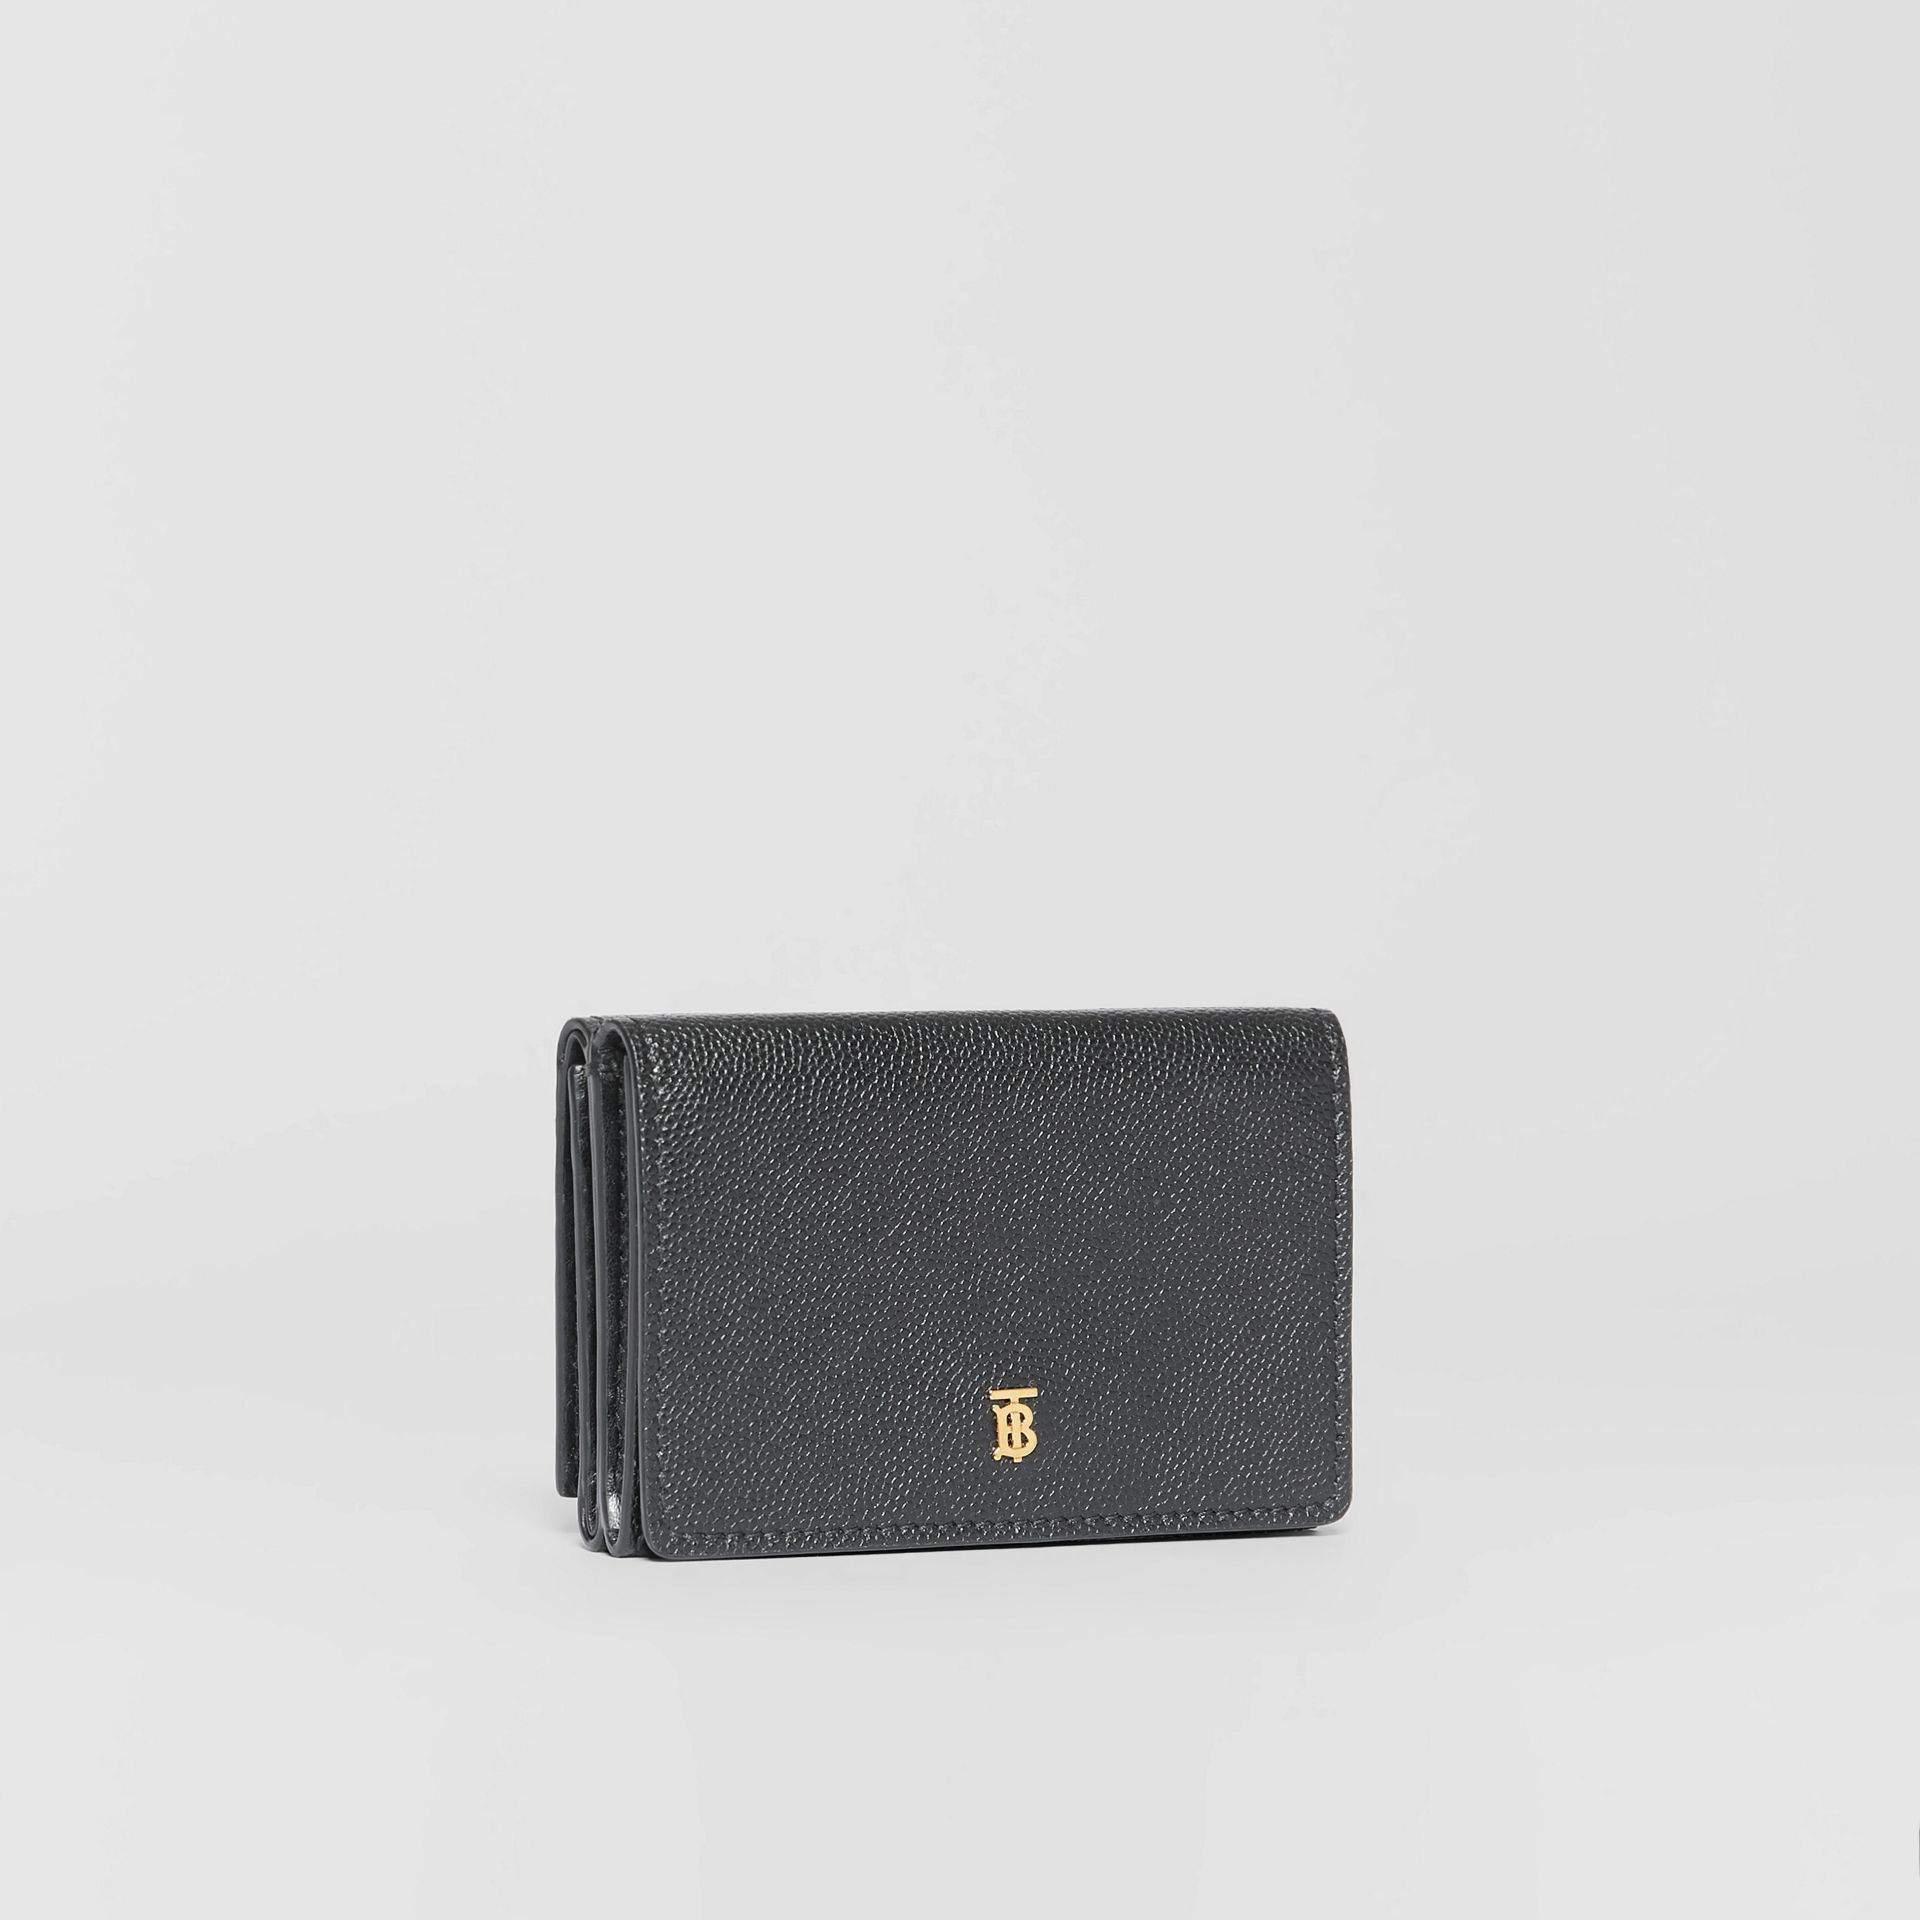 Small Grainy Leather Folding Wallet in Black - Women | Burberry - gallery image 3